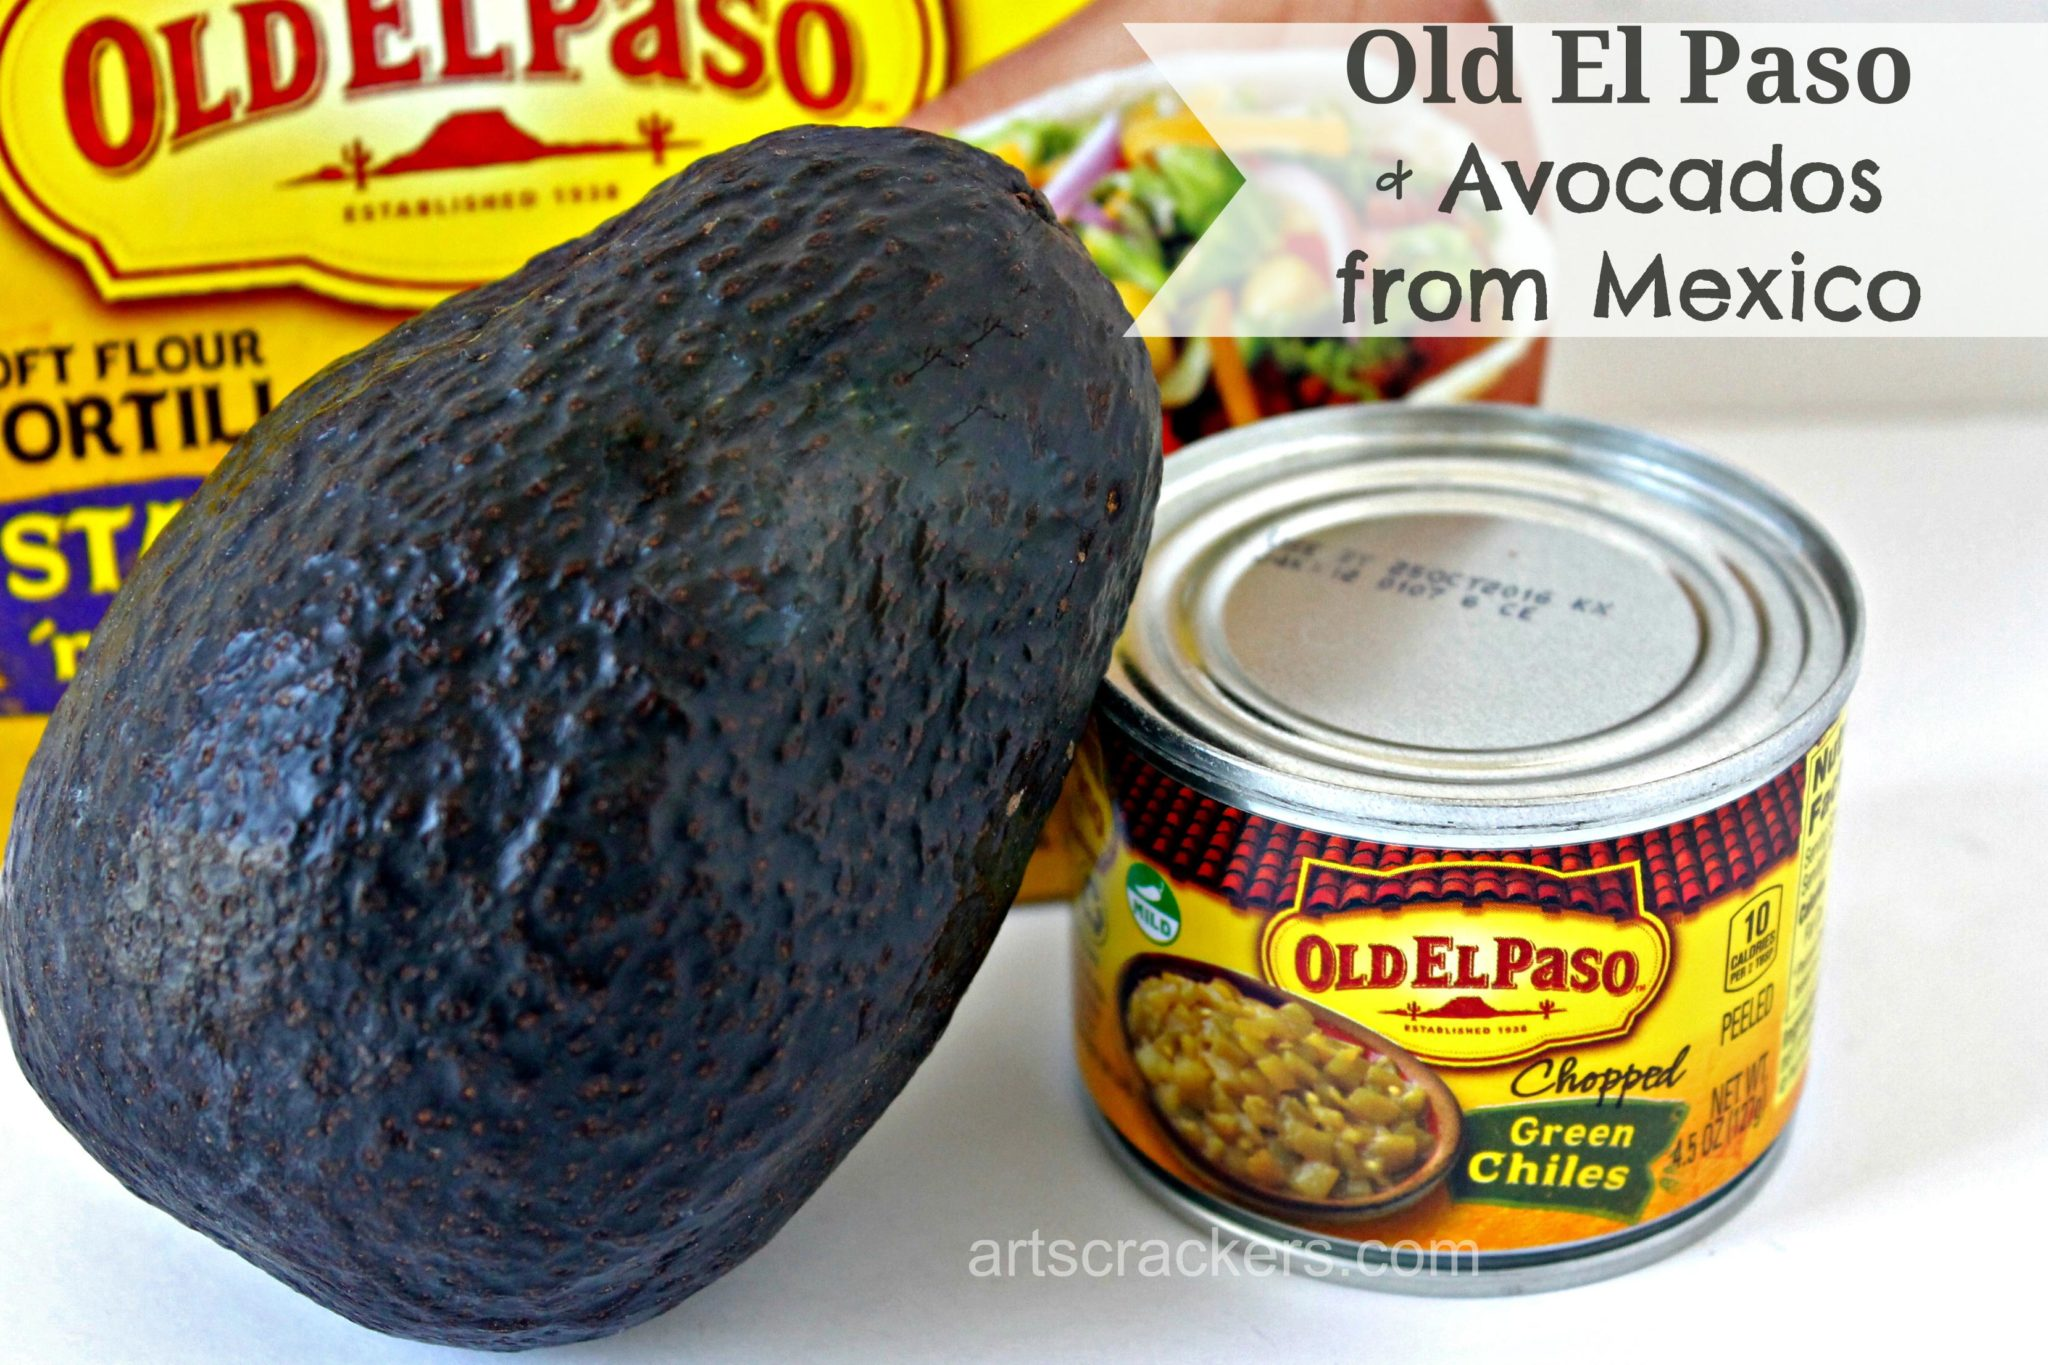 Old El Paso and Avocados from Mexico